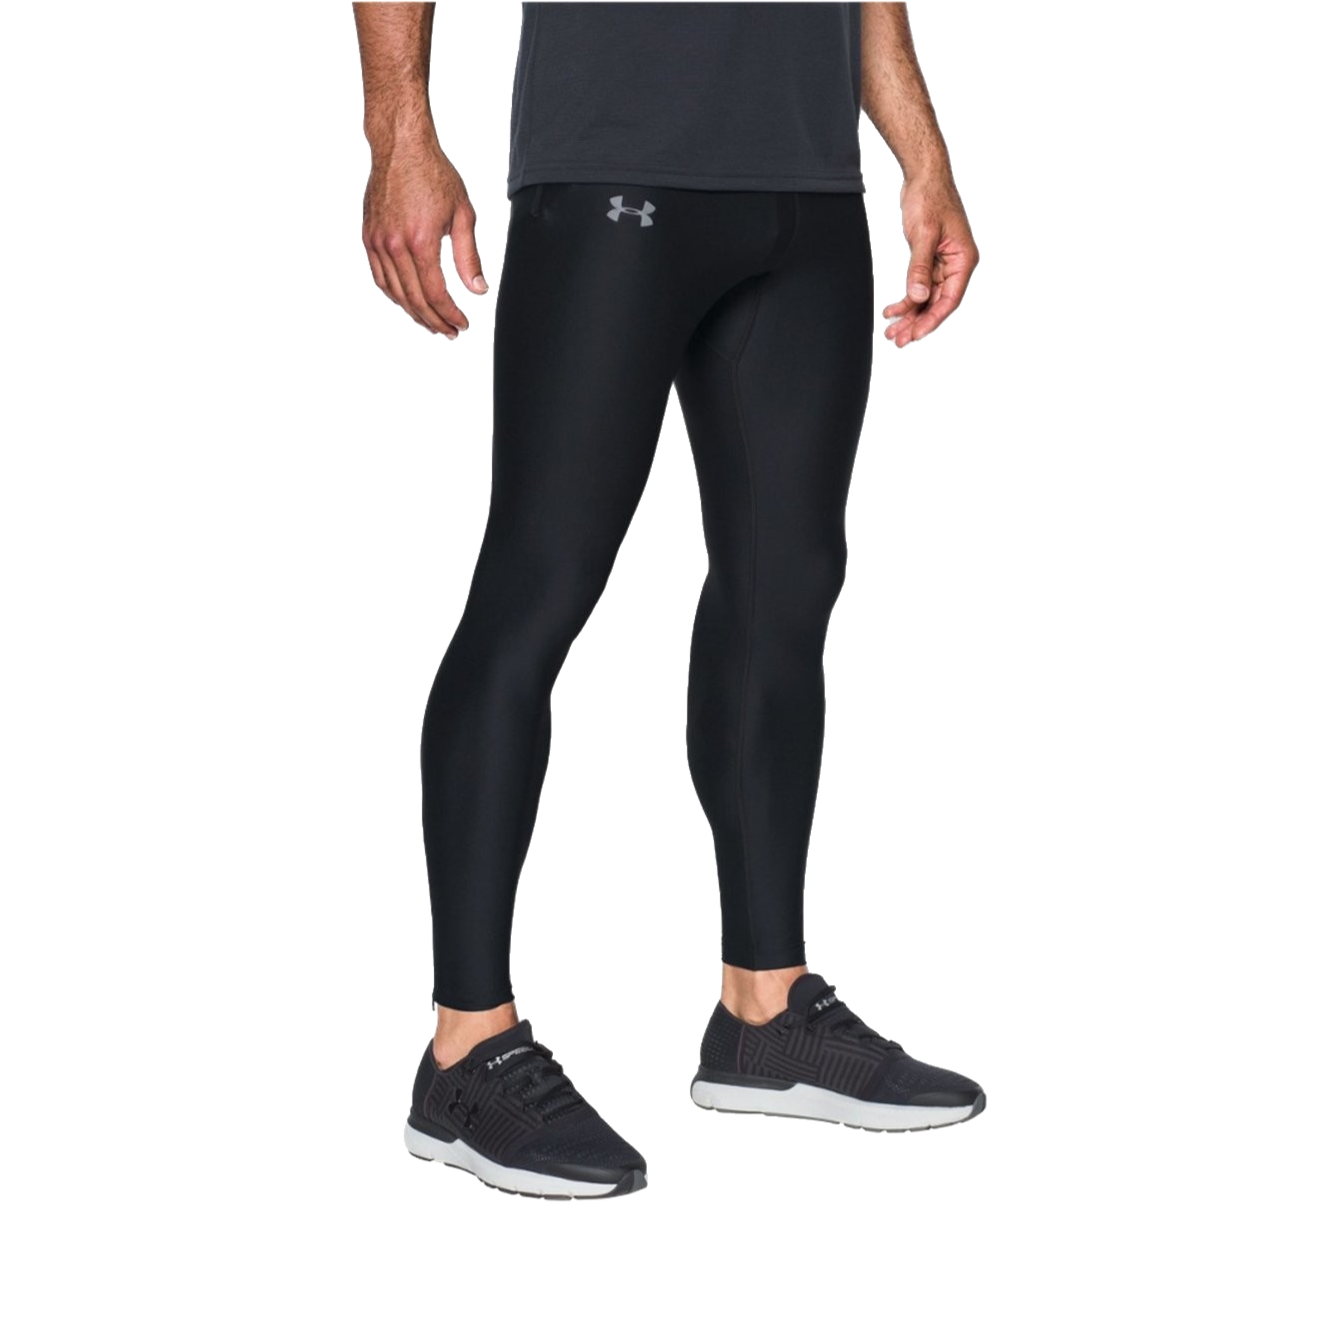 Under Armour True Heat Gear Legging (aláöltözet)